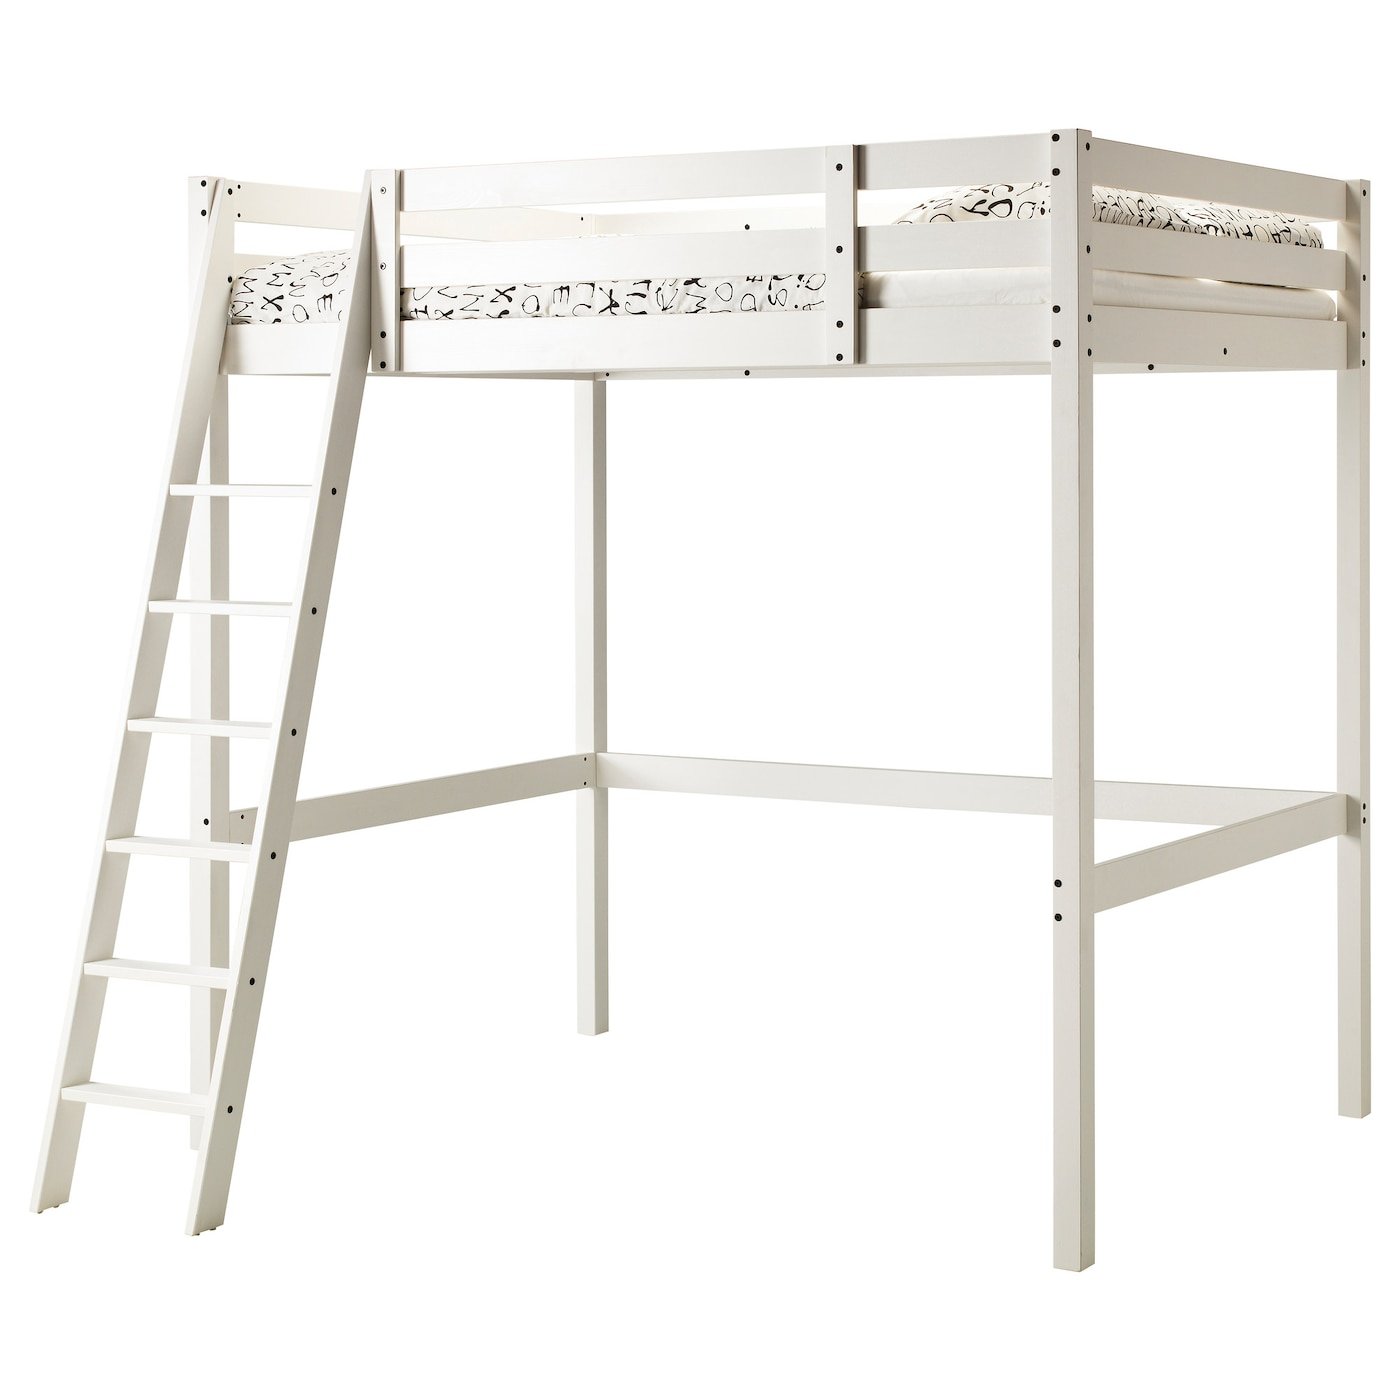 IKEA STORÅ loft bed frame You can use the space under the bed for storage, a workspace or seating.